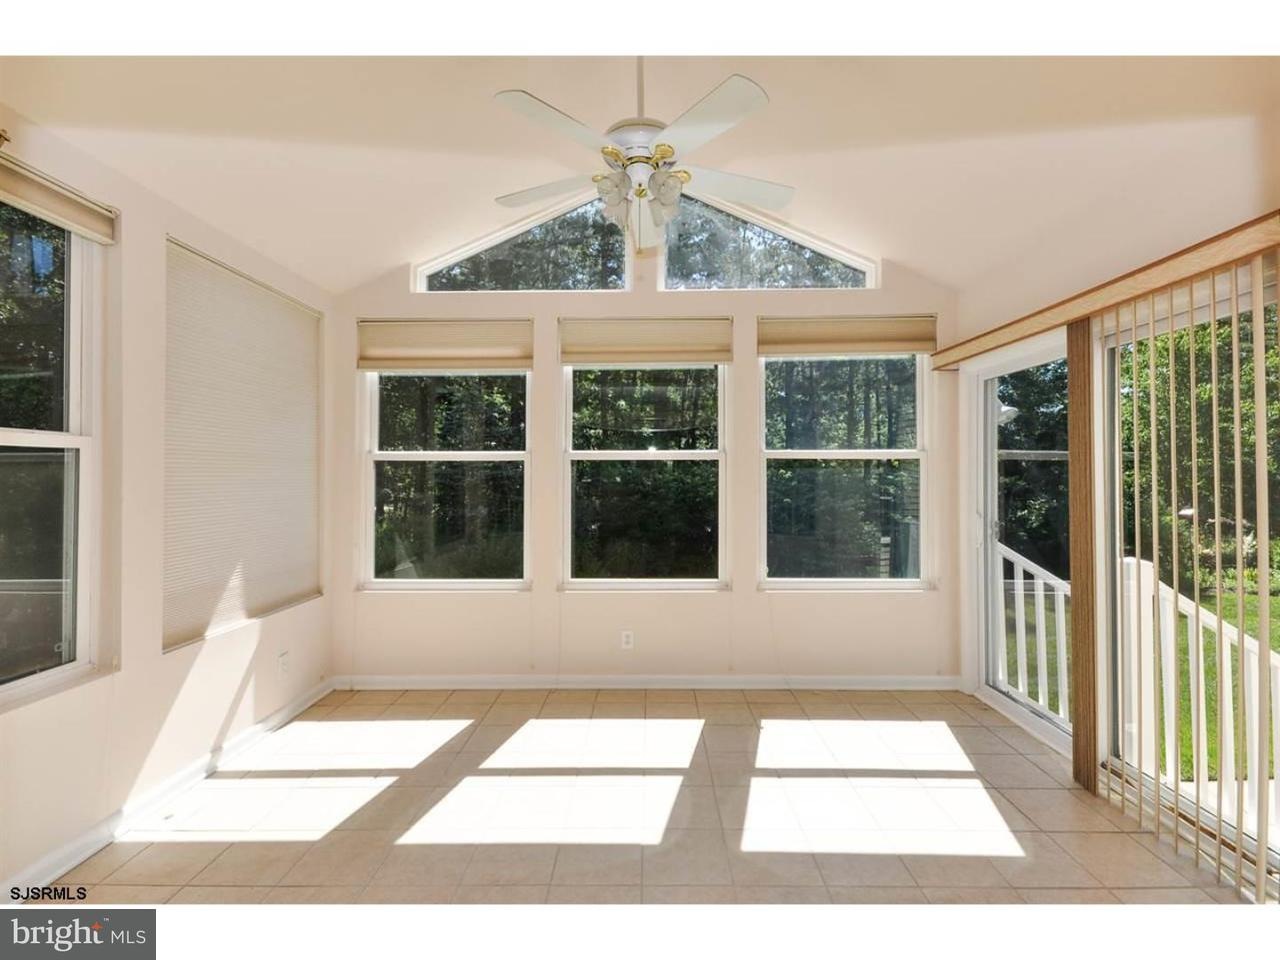 Single Family Home for Sale at 12 WORDSWORTH Street Galloway, New Jersey 08205 United States